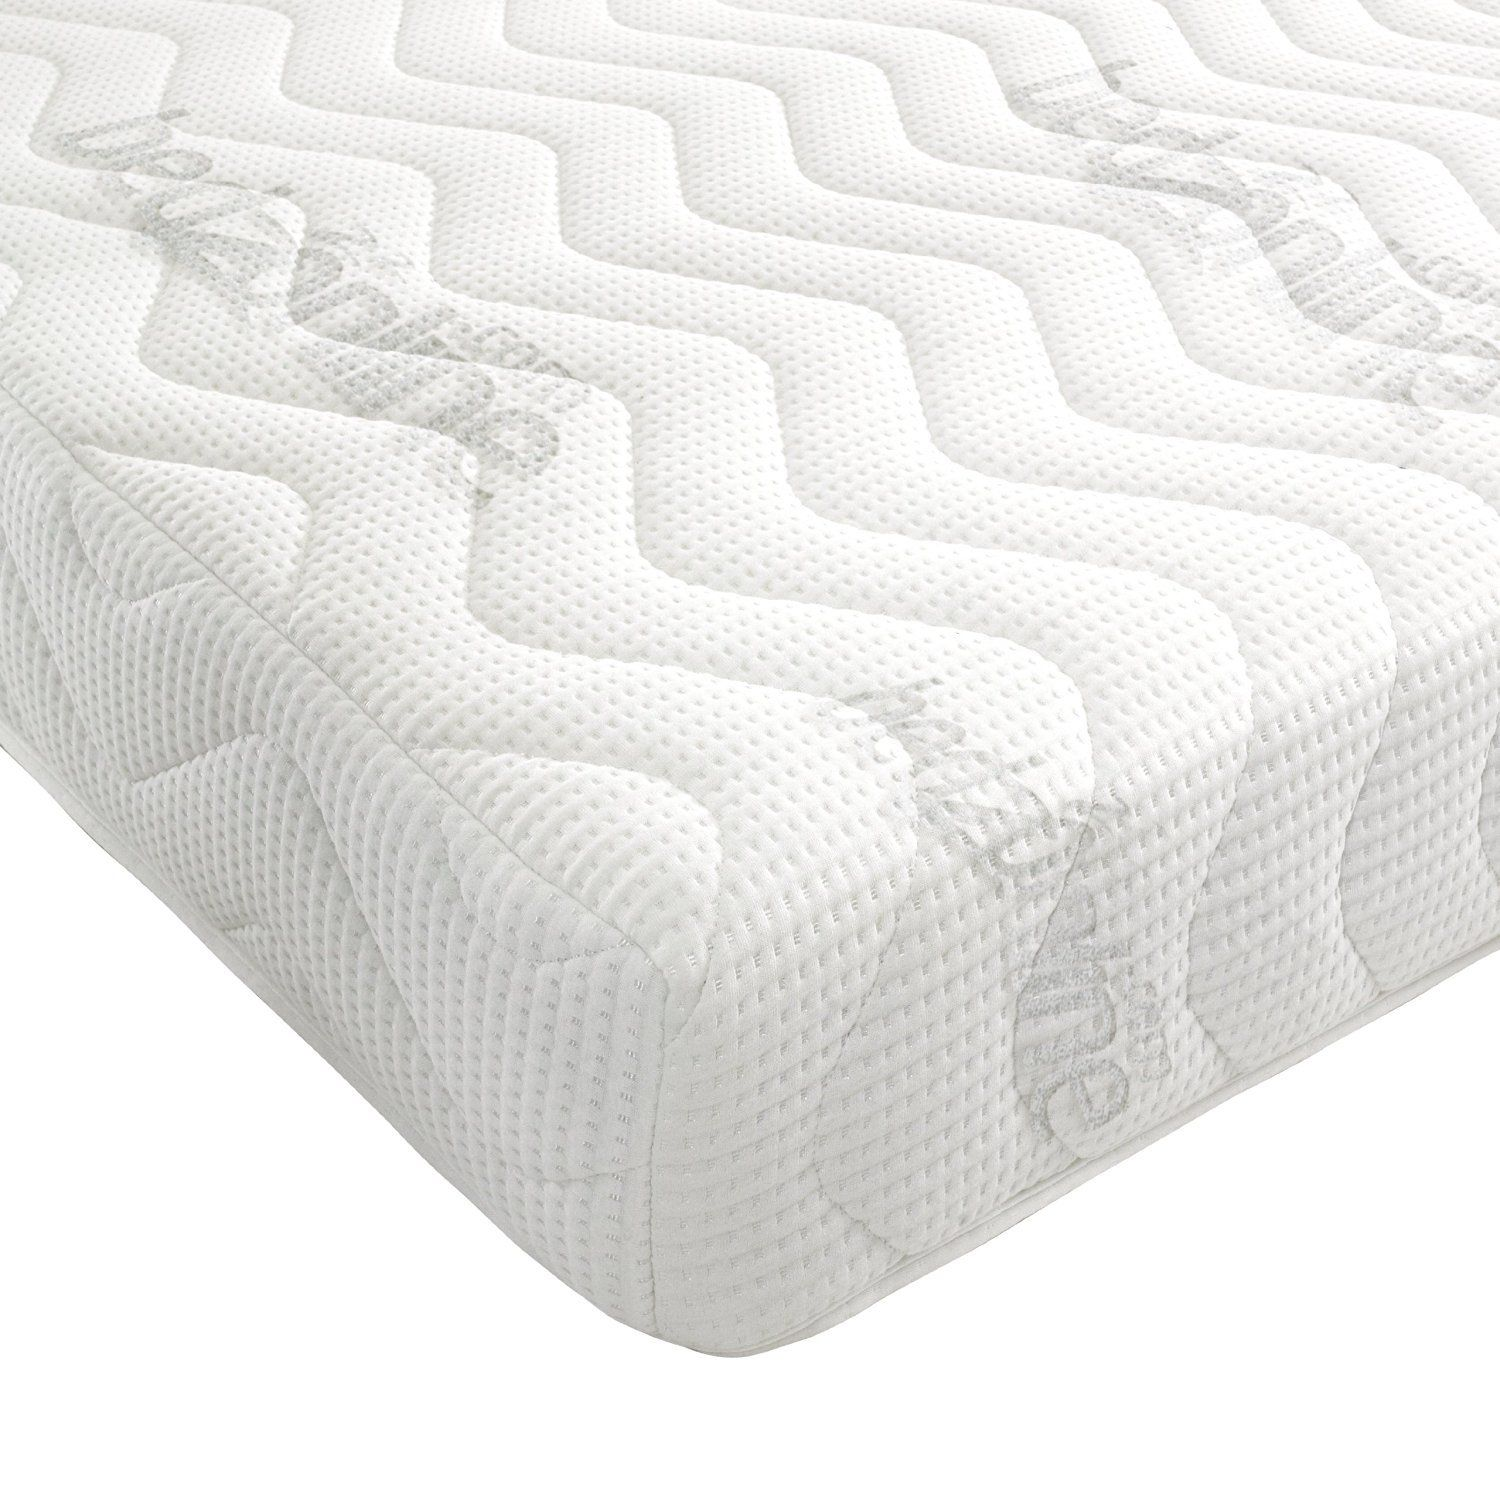 icoil sleep memory product master mattress buzz foam review reviews urban